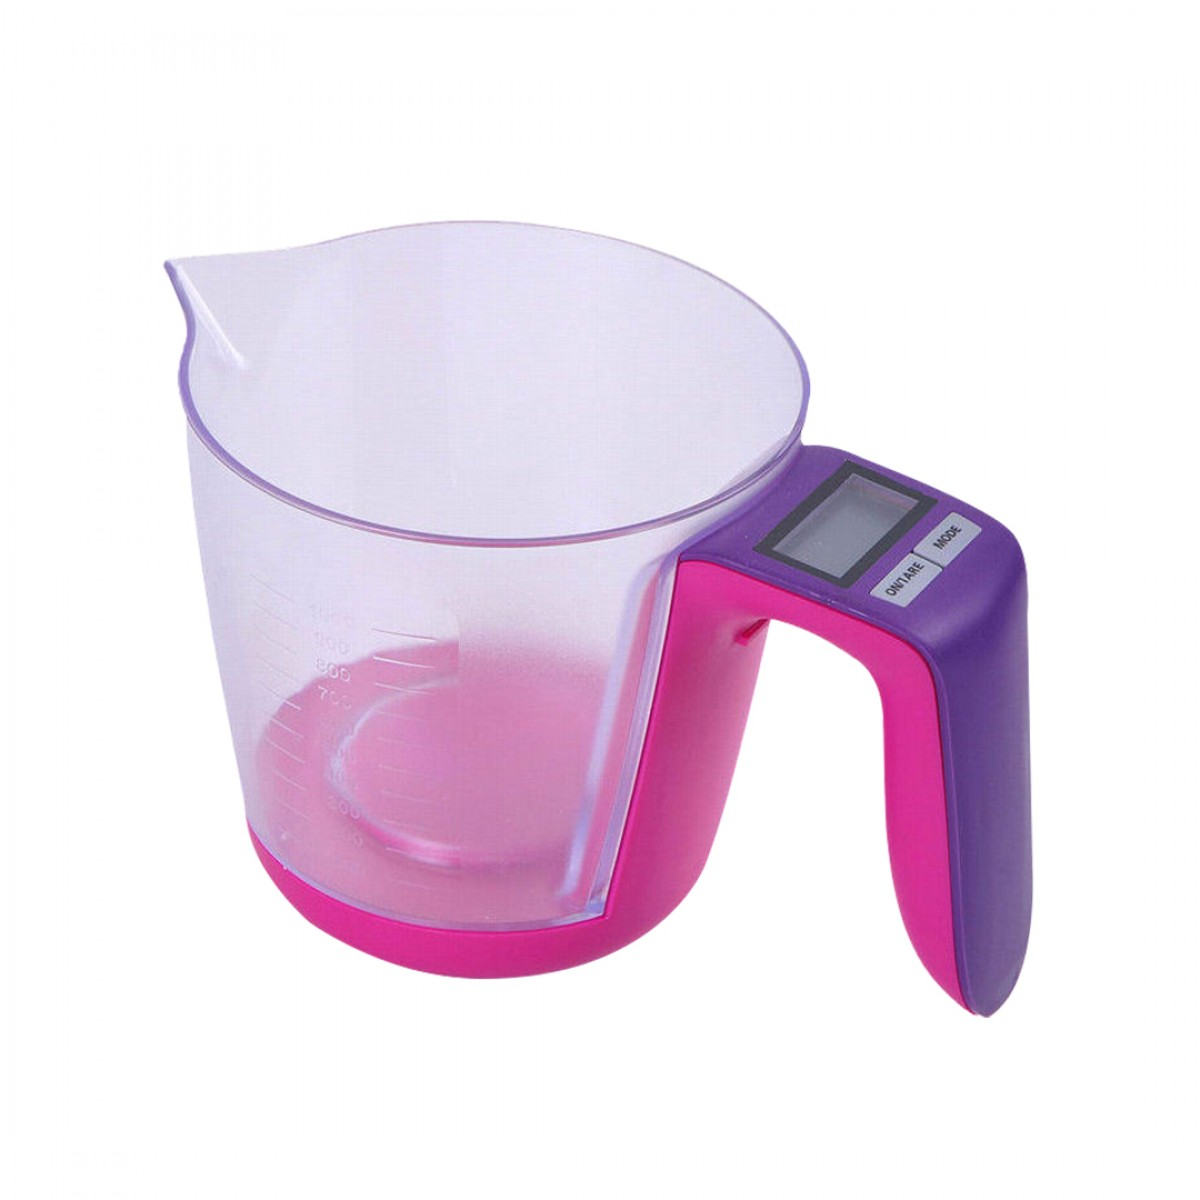 1200x1200 Treats Digital Measuring Cup And Scale